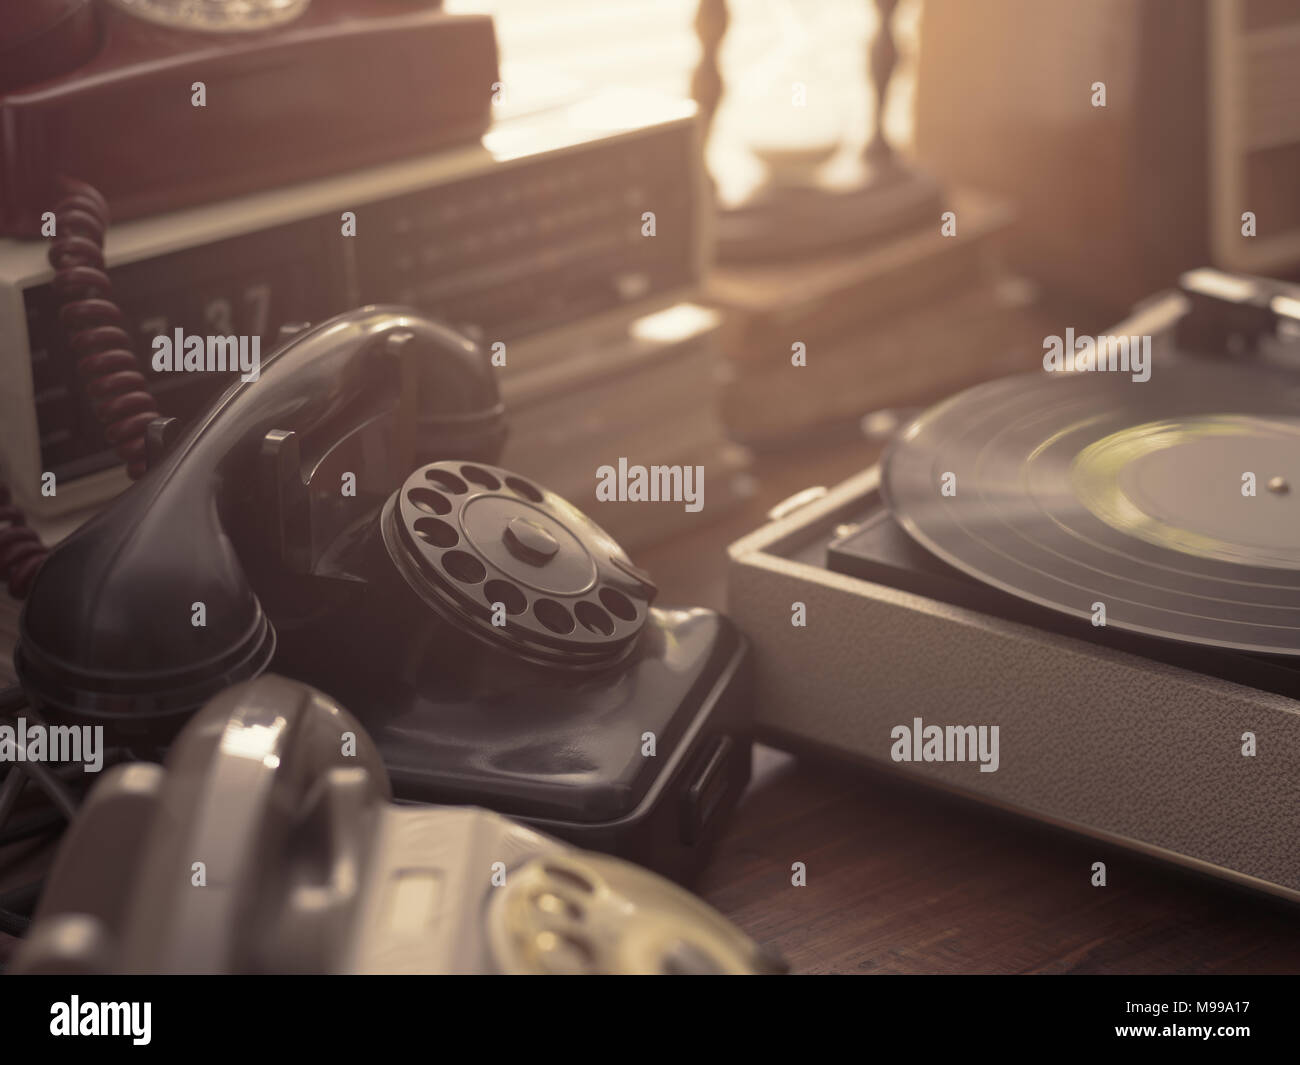 Vintage retro revival objects and appliances assortment on a table, rotary dial telephones and record player on the foreground - Stock Image